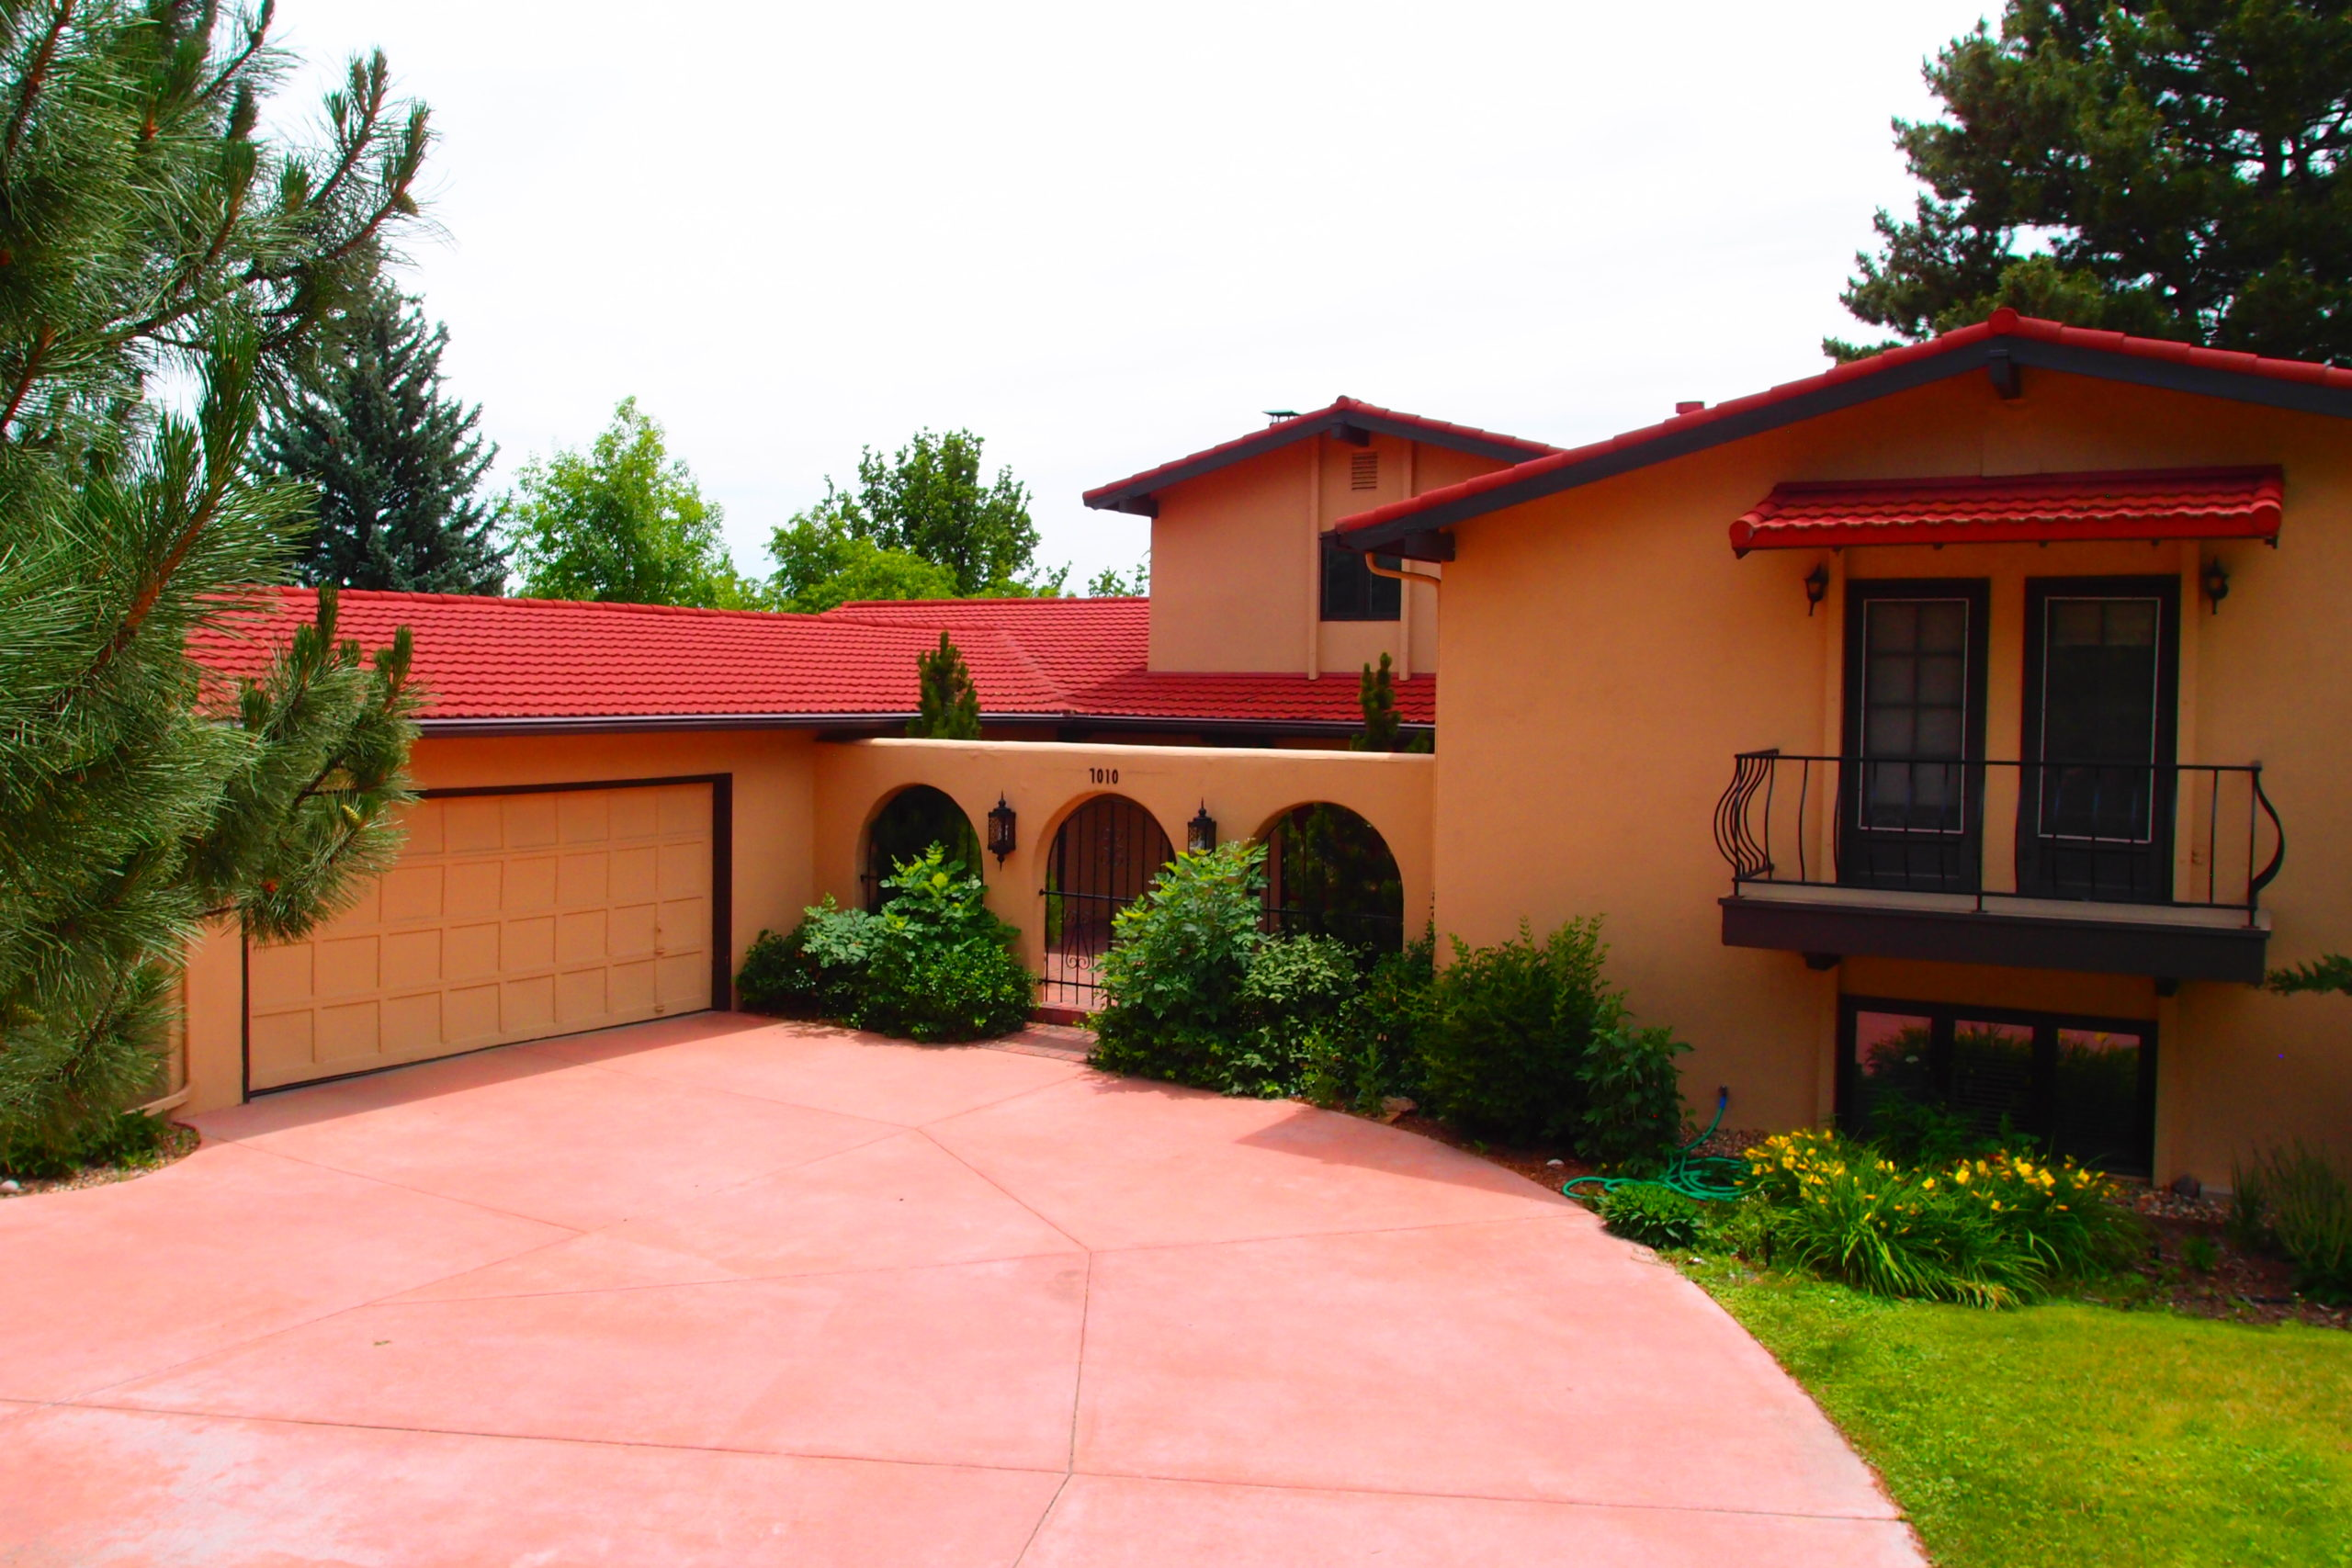 7010 Indian Peaks Trail – SOLD